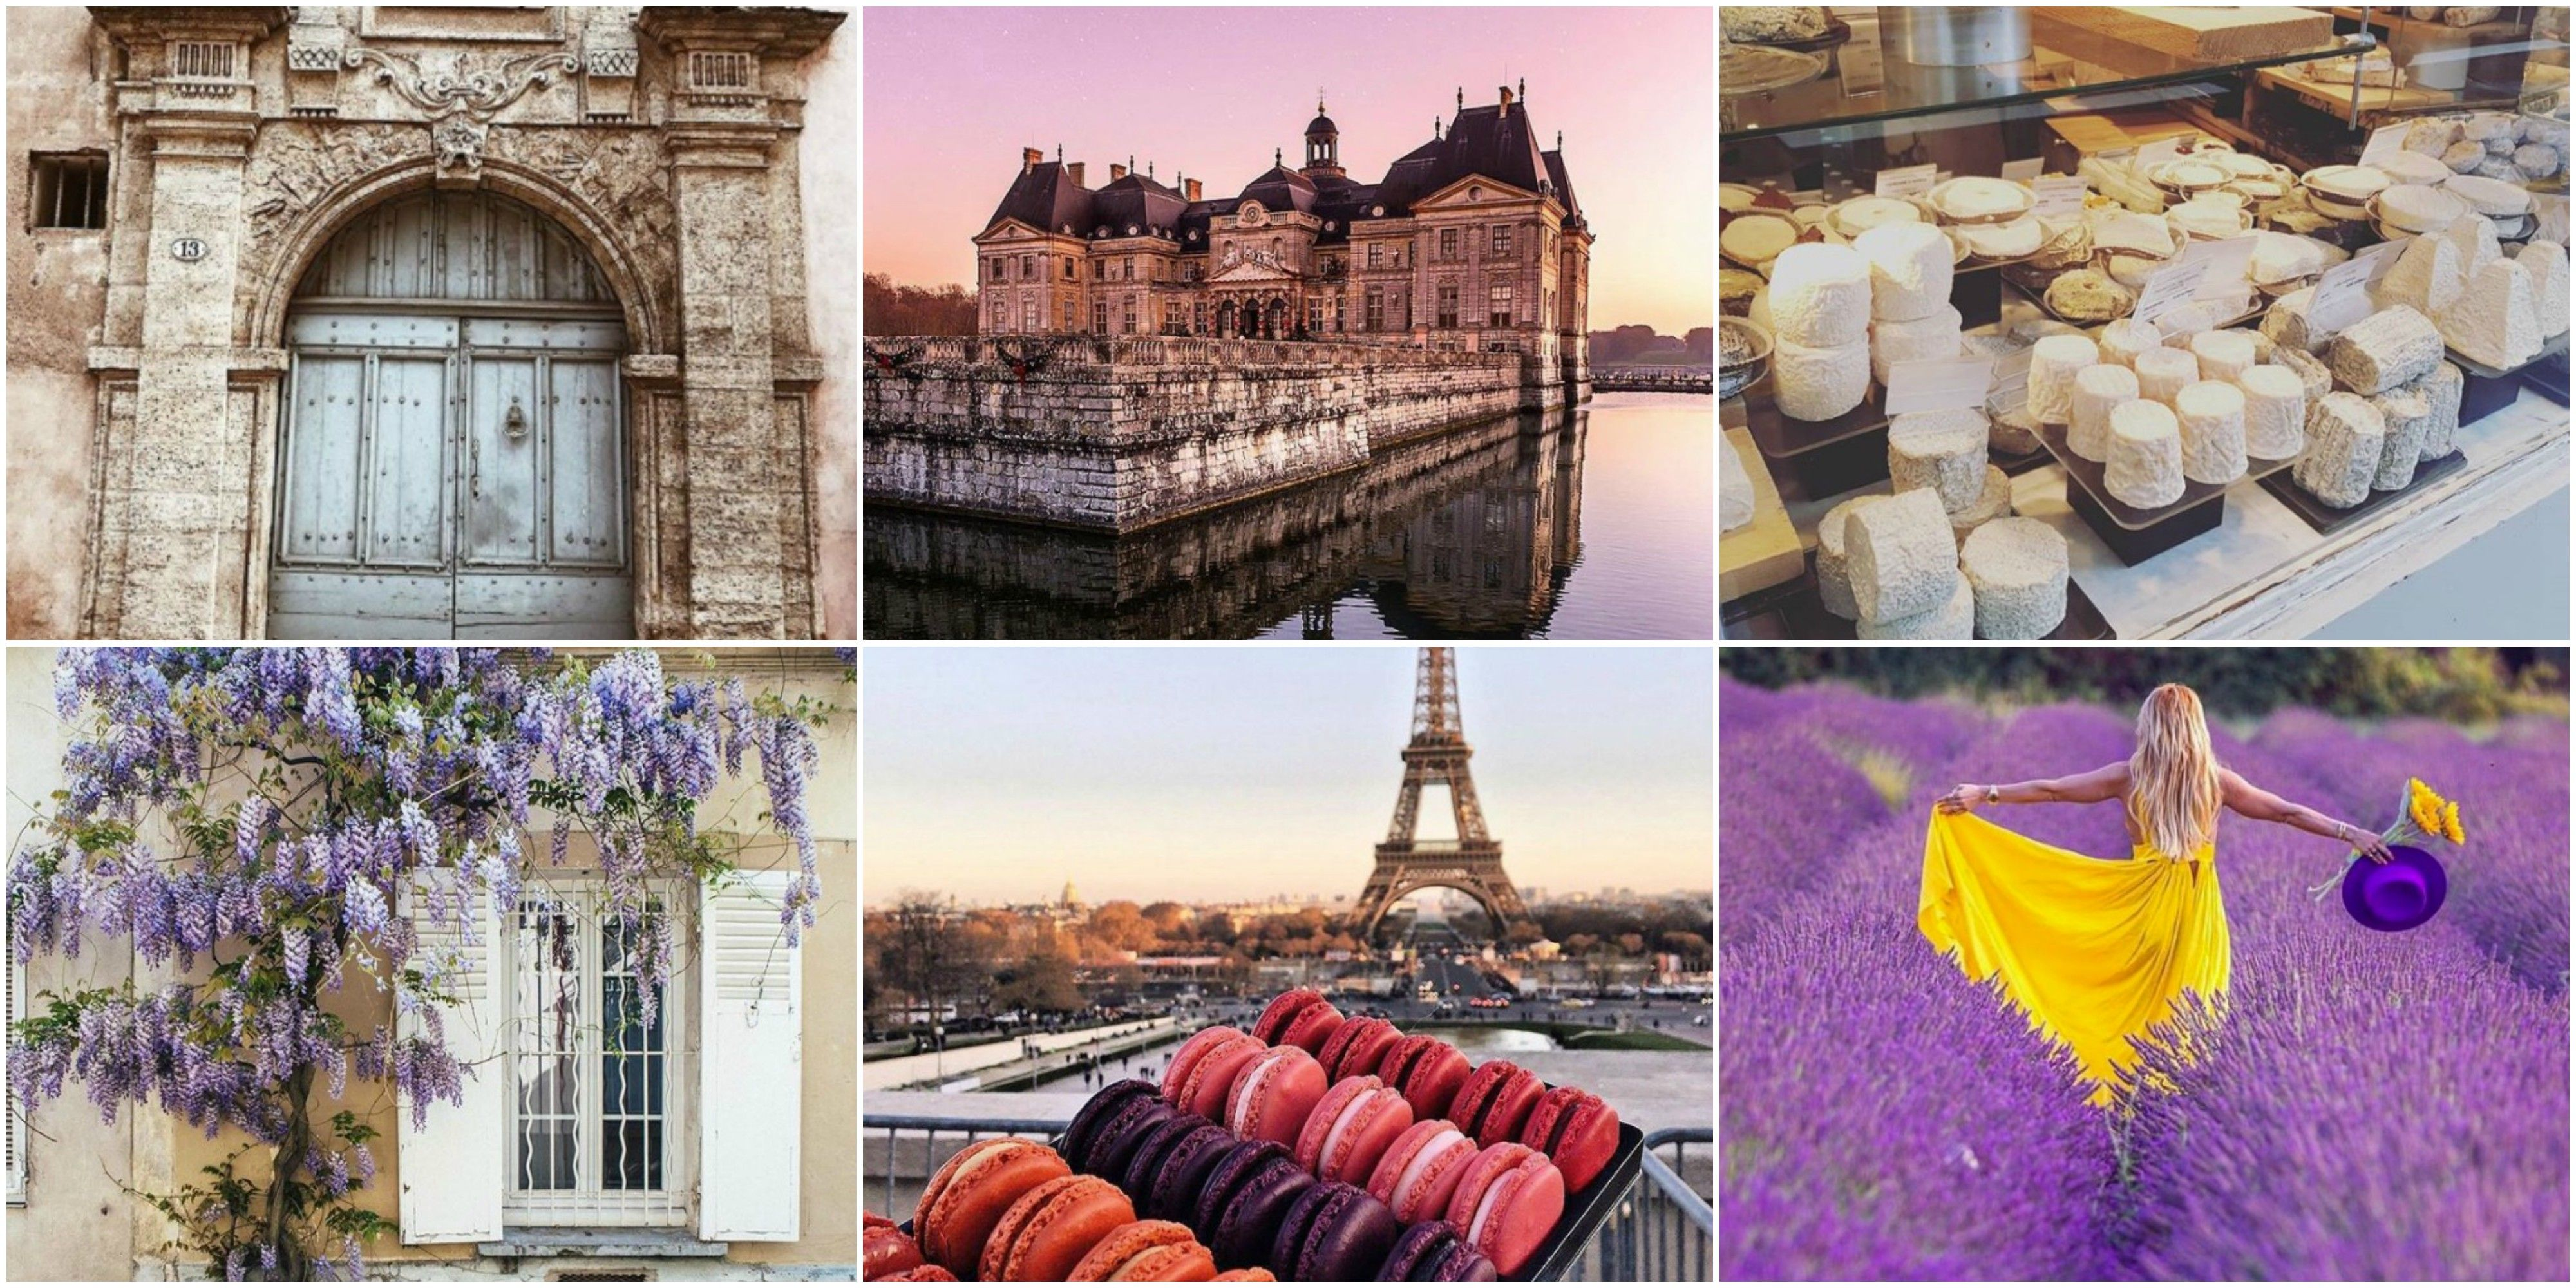 The 10 most Instagrammed places in France